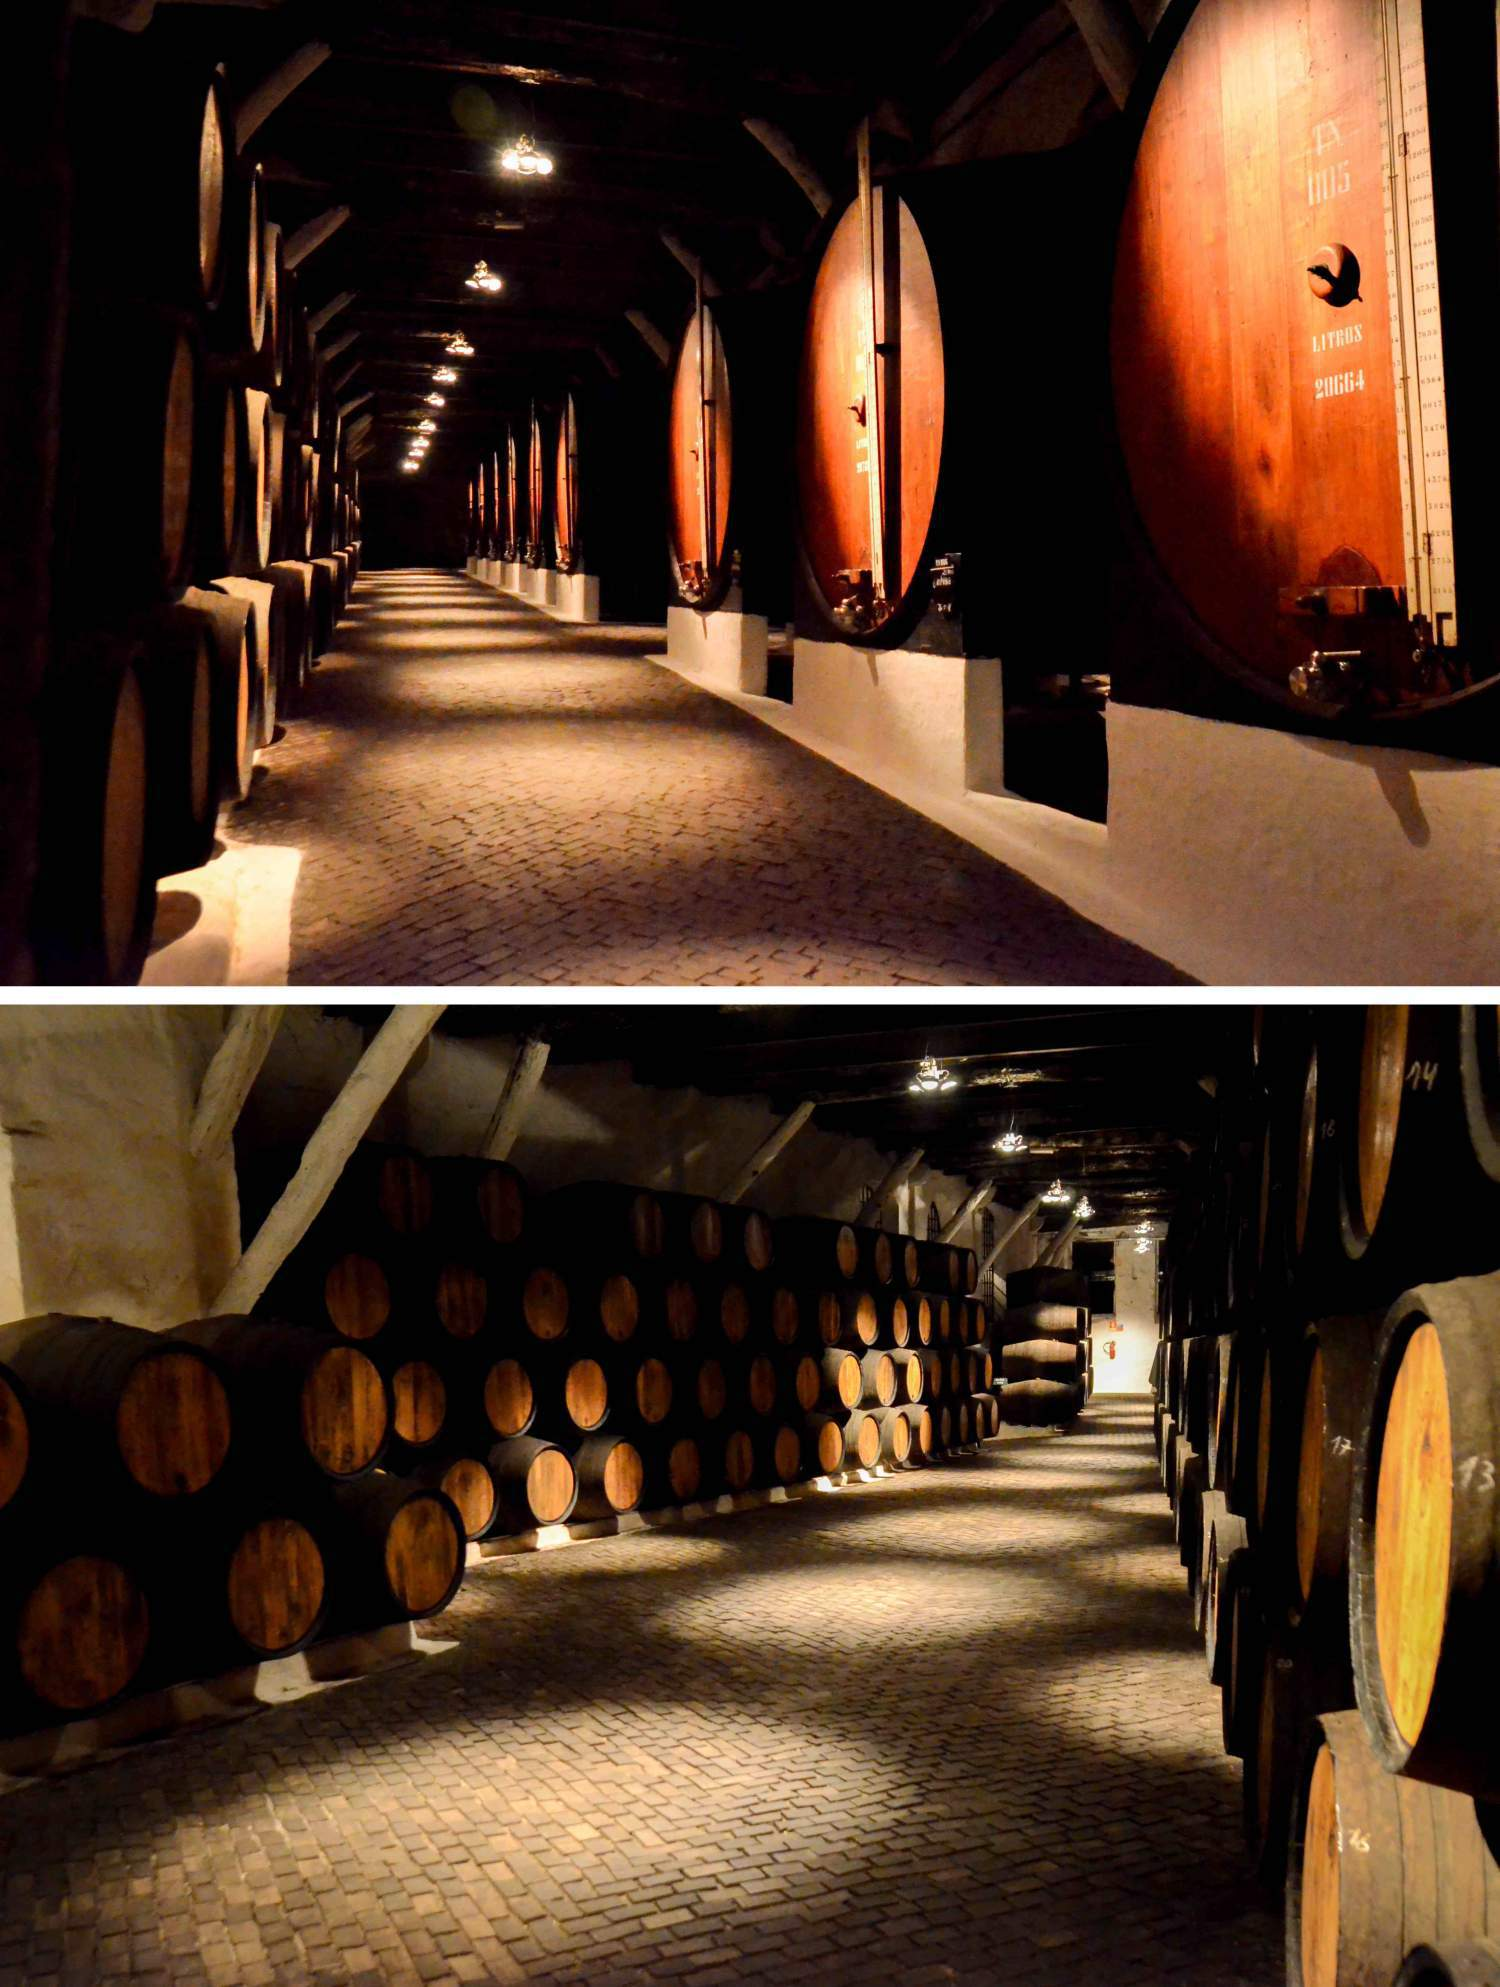 Sandeman port wine maker visit in Porto